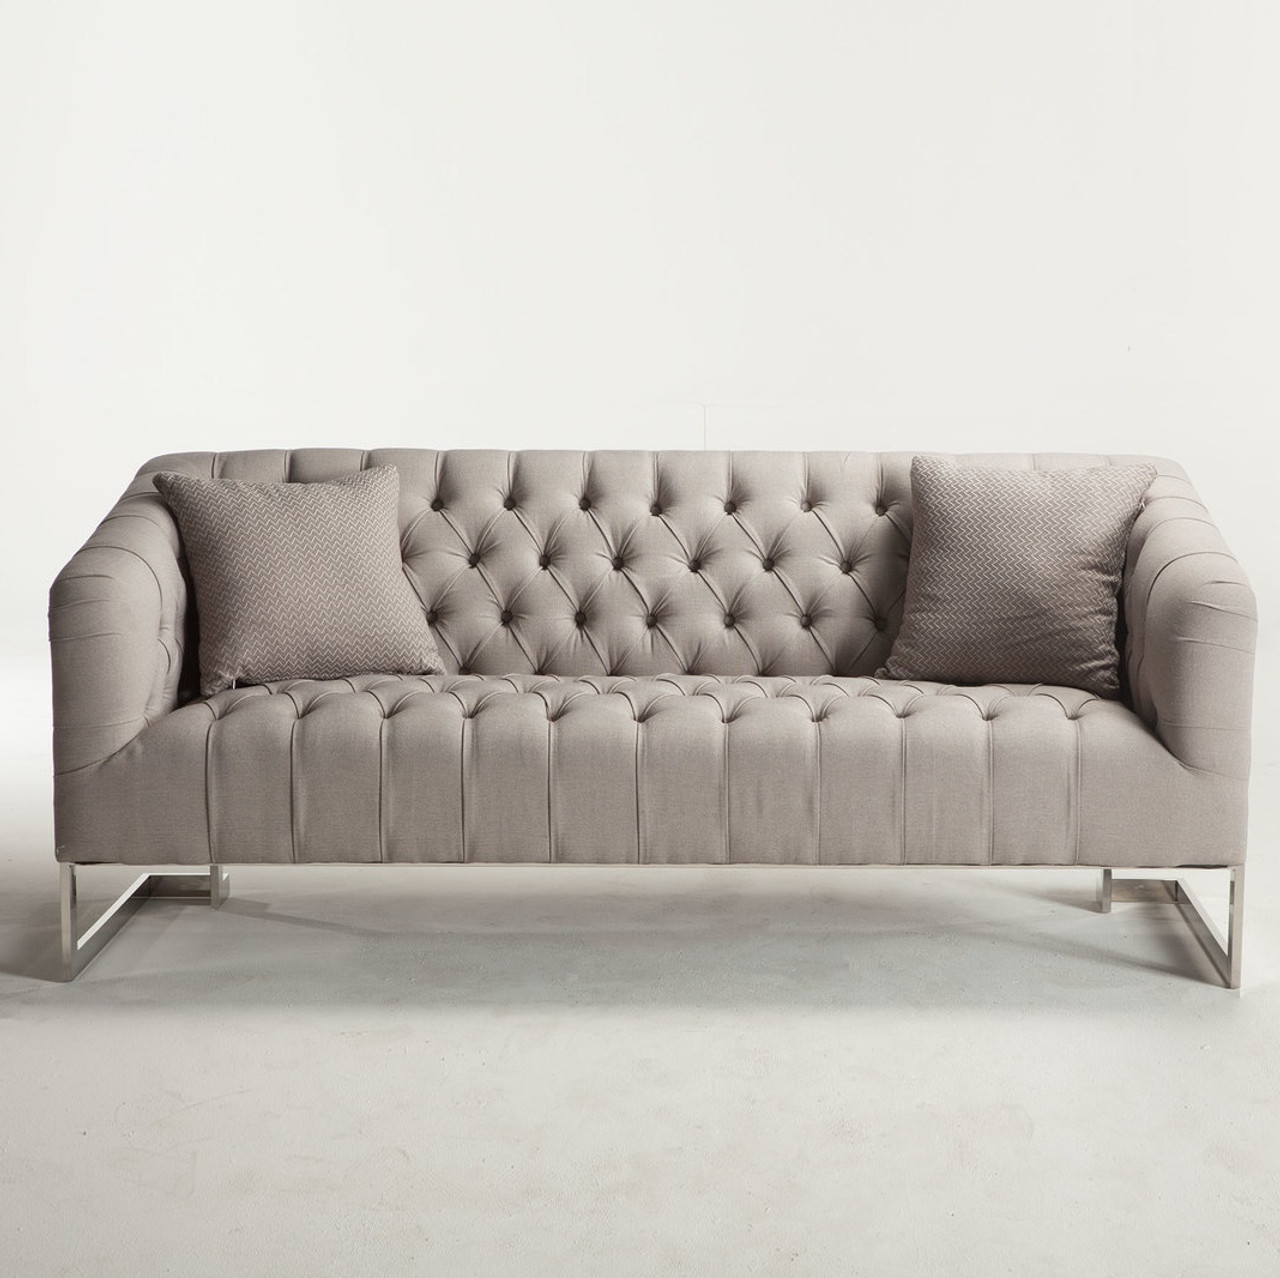 Sofa Modern Austin Modern Tufted Sofa Grey